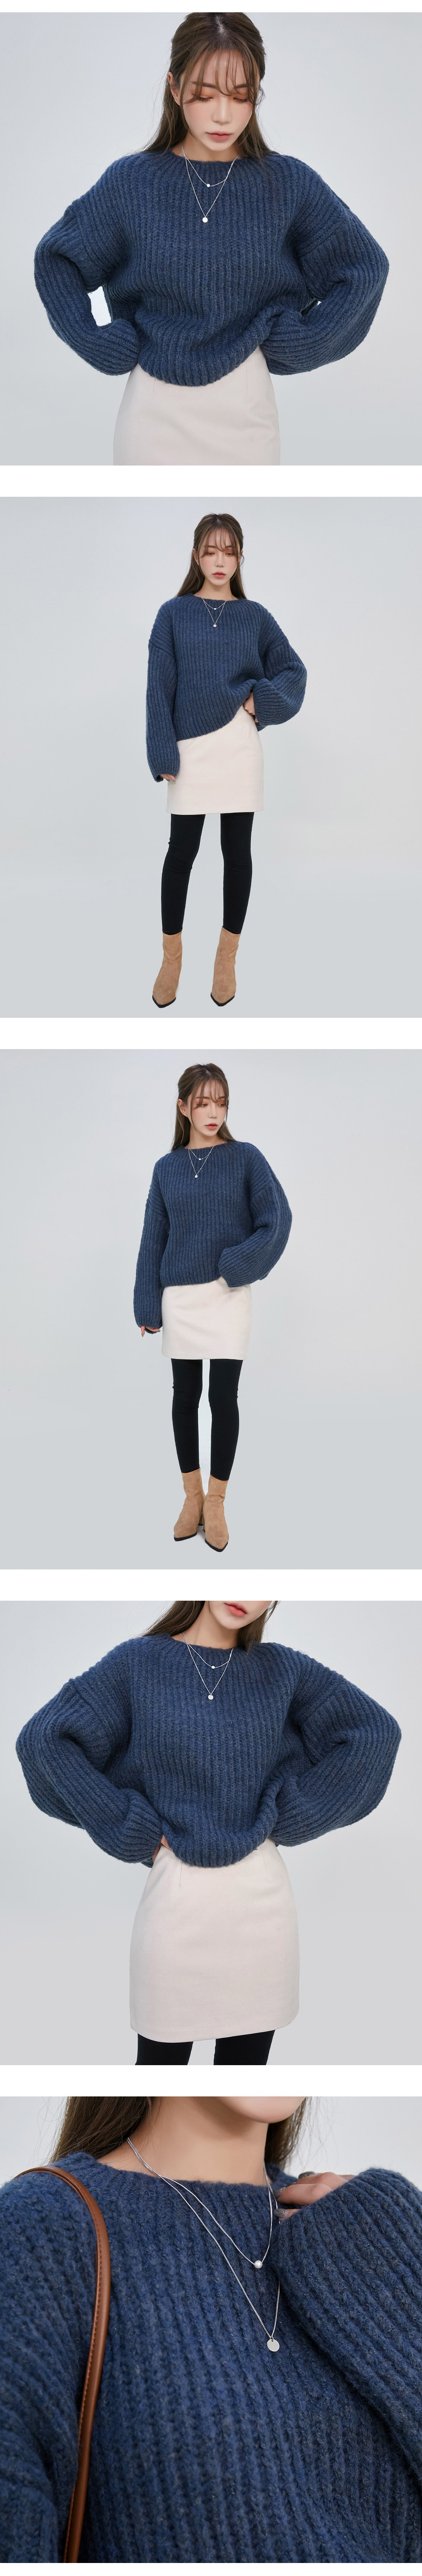 Heidi balloon knit